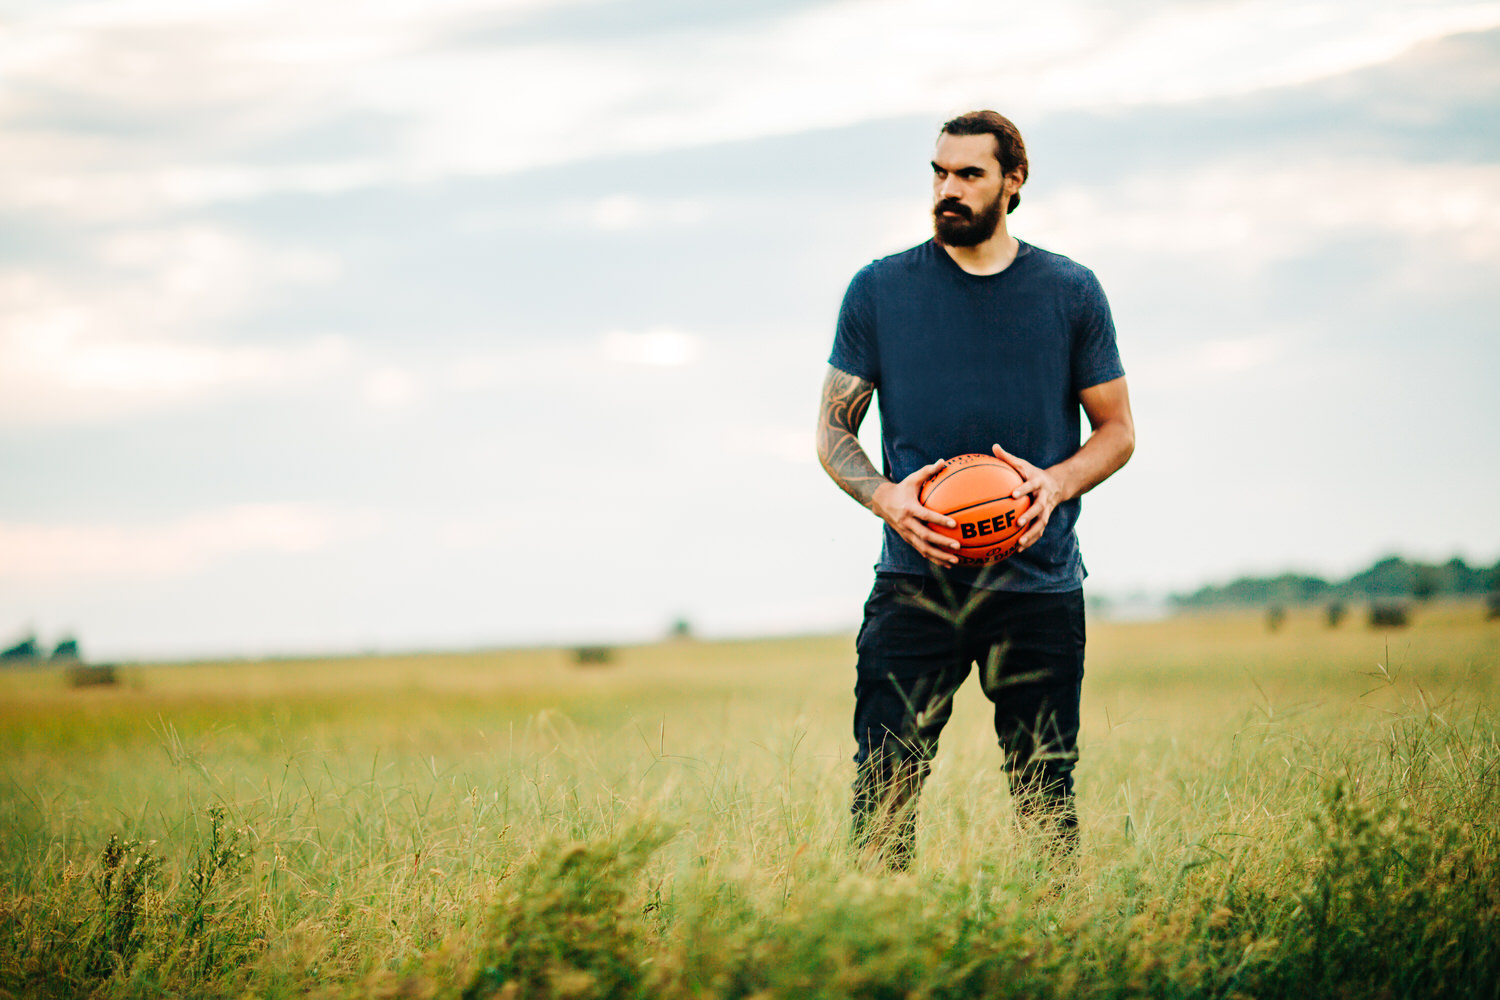 OKLAHOMA CITY BASKETBALL STAR, STEVEN ADAMS, PARTNERS WITH THE OKLAHOMA BEEF COUNCIL